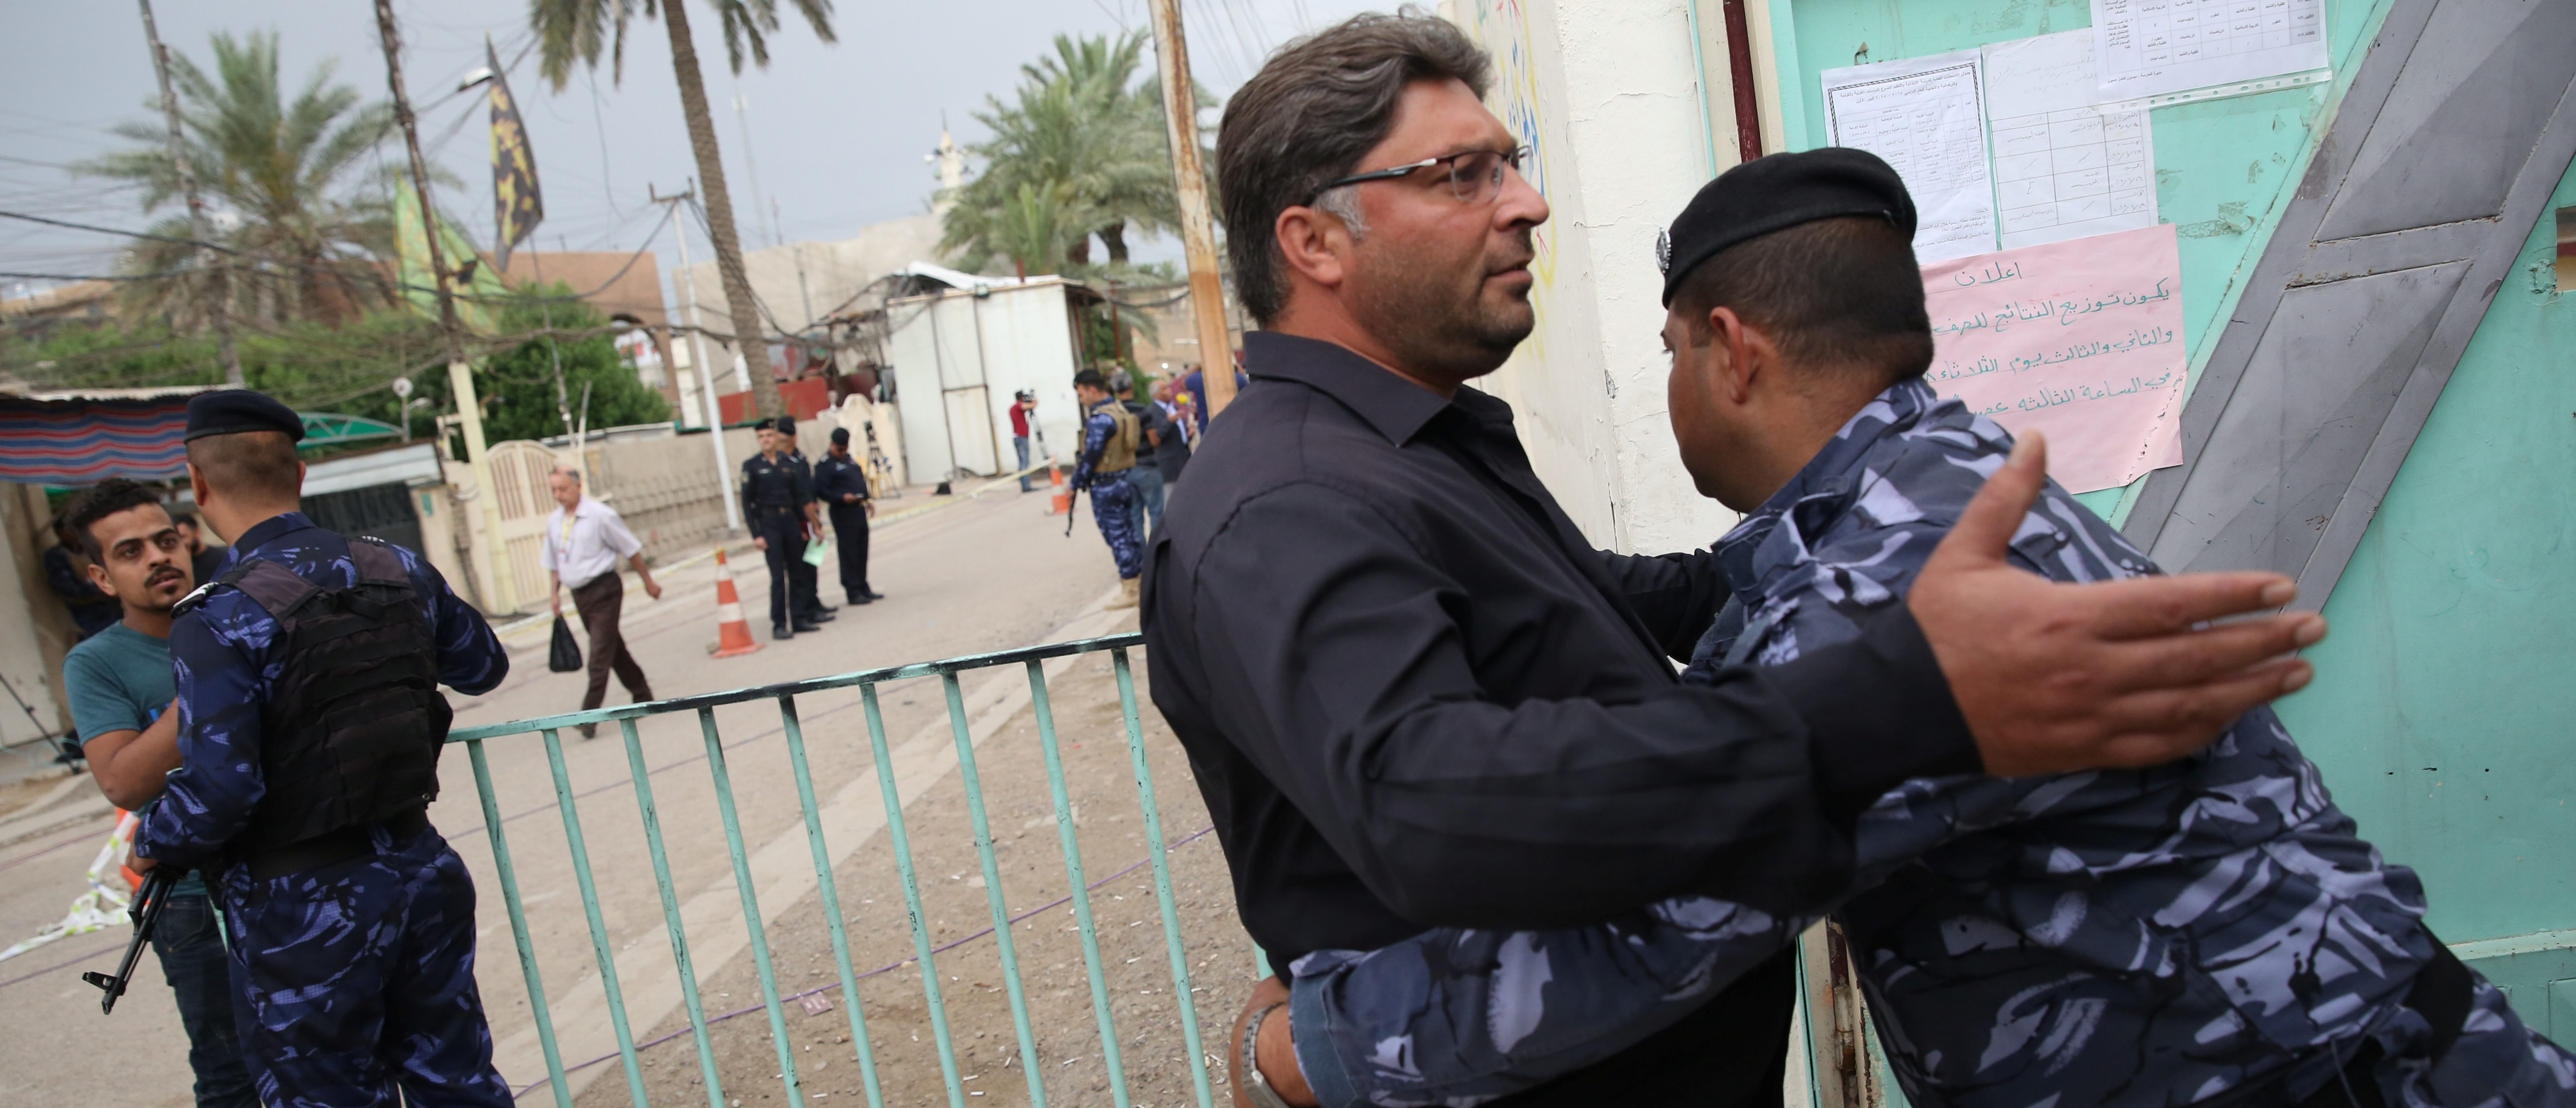 Iraqi security forces check people before entering a polling station during the parliamentary election in Baghdad, Iraq May 12, 2018. REUTERS/Abdullah Dhiaa al-Deen - RC1C40318DF0